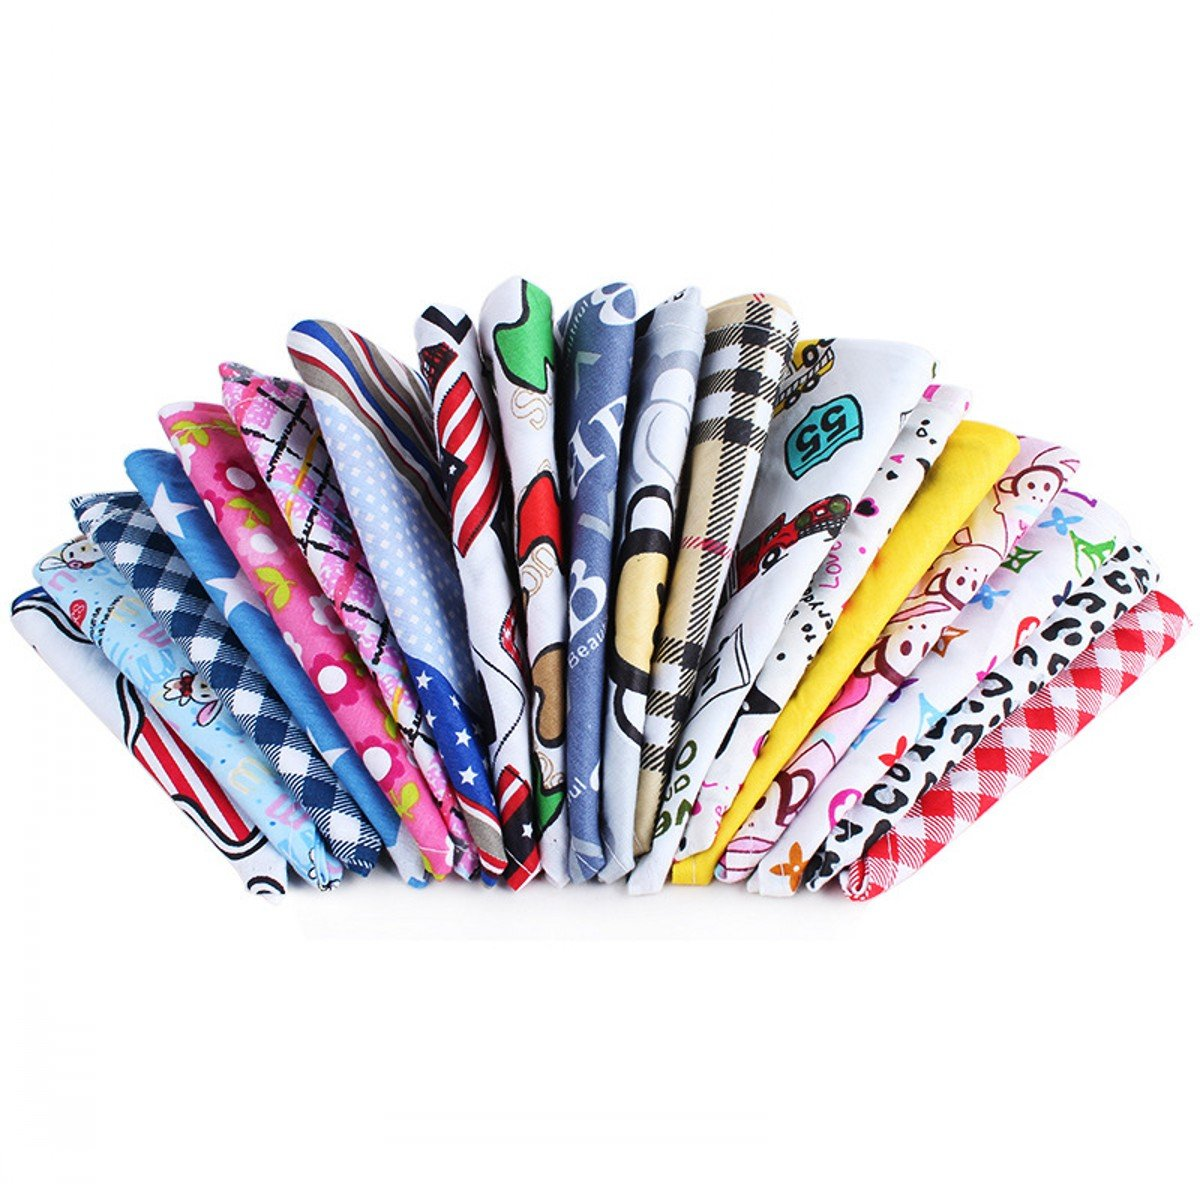 PET SHOW Assorted Styles Pet Dog Cat Puppy Bandana Bibs Triangle Head Scarfs Accessories for Girls Mix Color Pack of 50 ... by PET SHOW